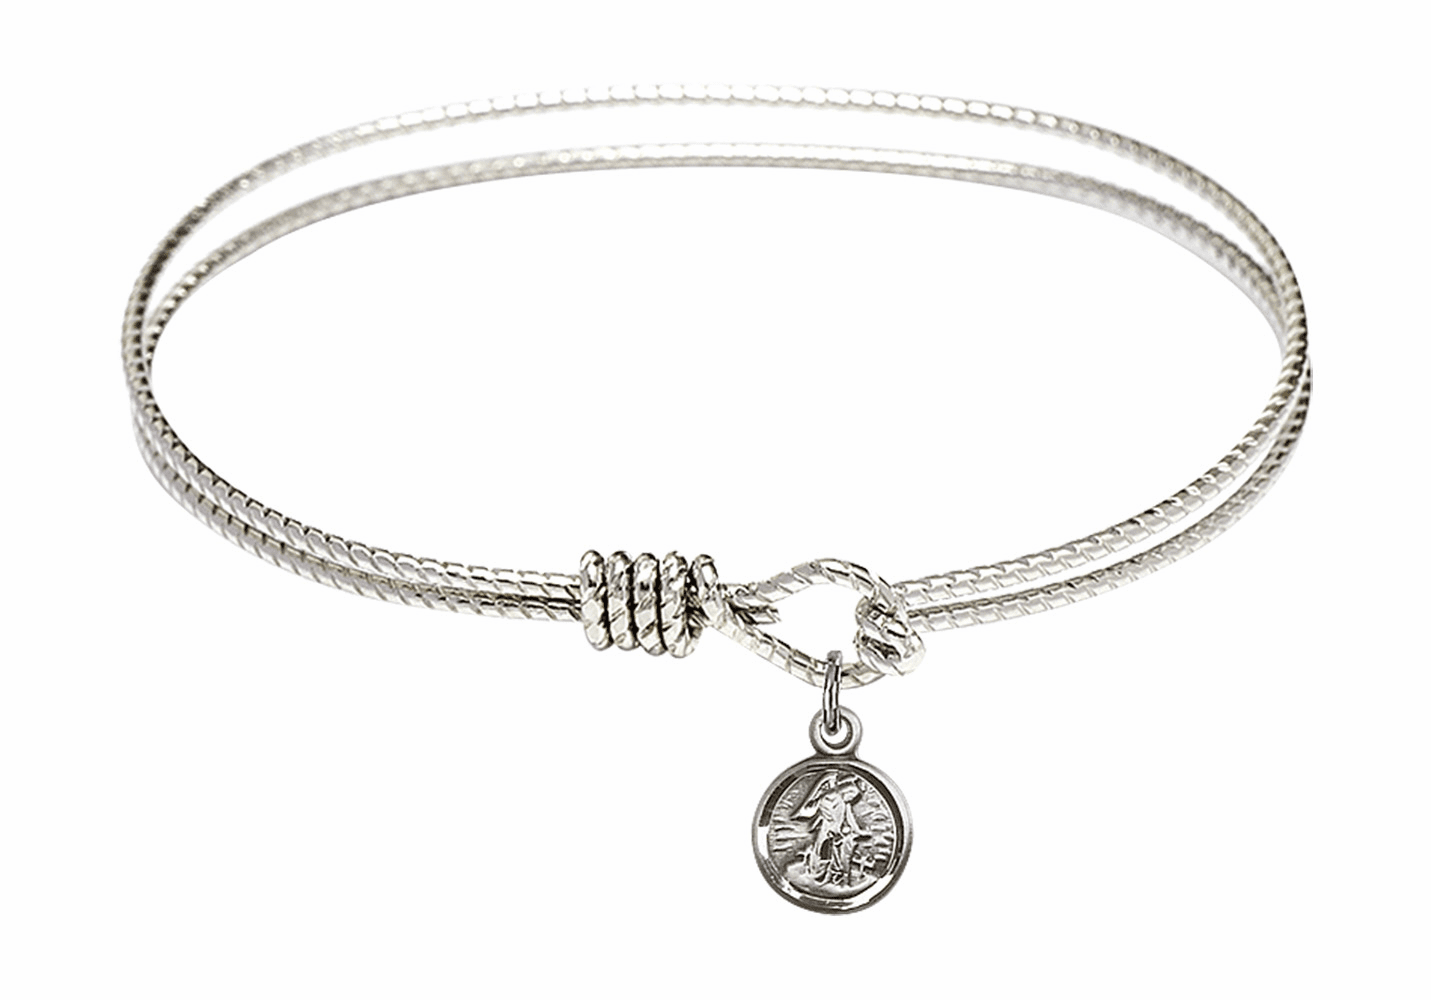 Round Twist Eye Hook Bangle Bracelet w/Small Guardian Angel Sterling Silver Charm by Bliss Mfg